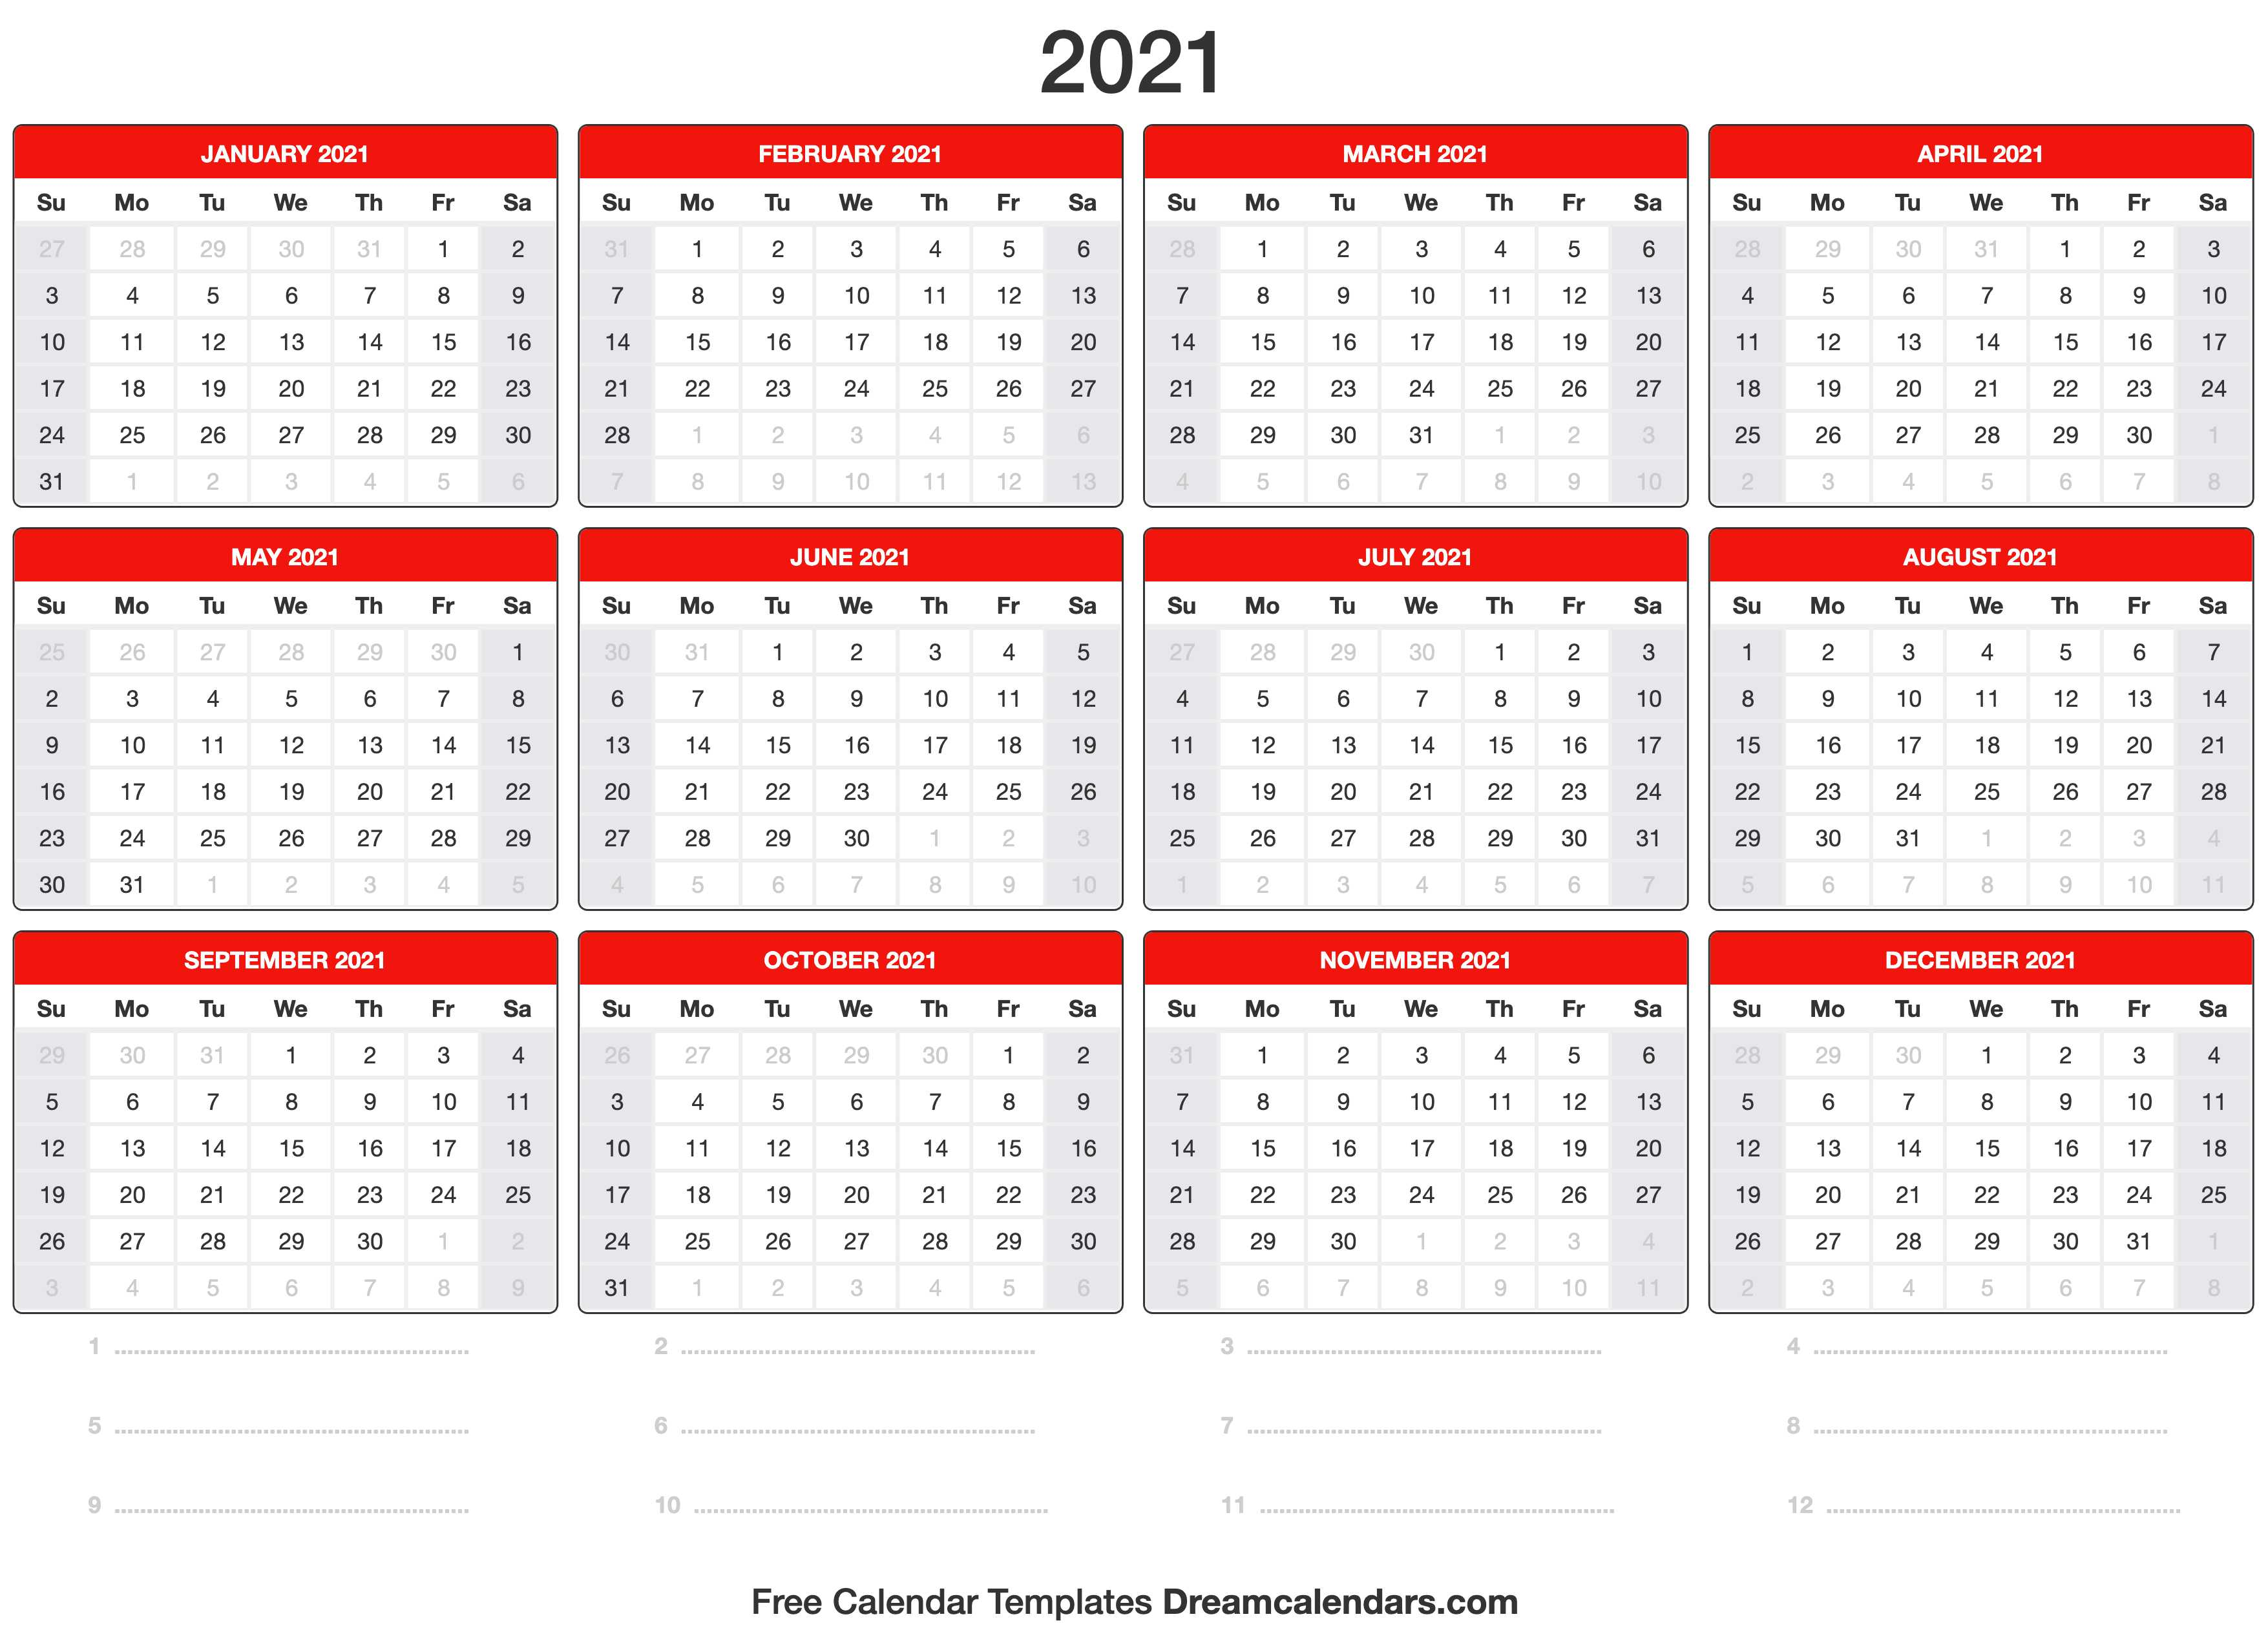 This free editable calendar template is also available in doc / docx, pdf, and jpg formats for download. 2021 Calendar